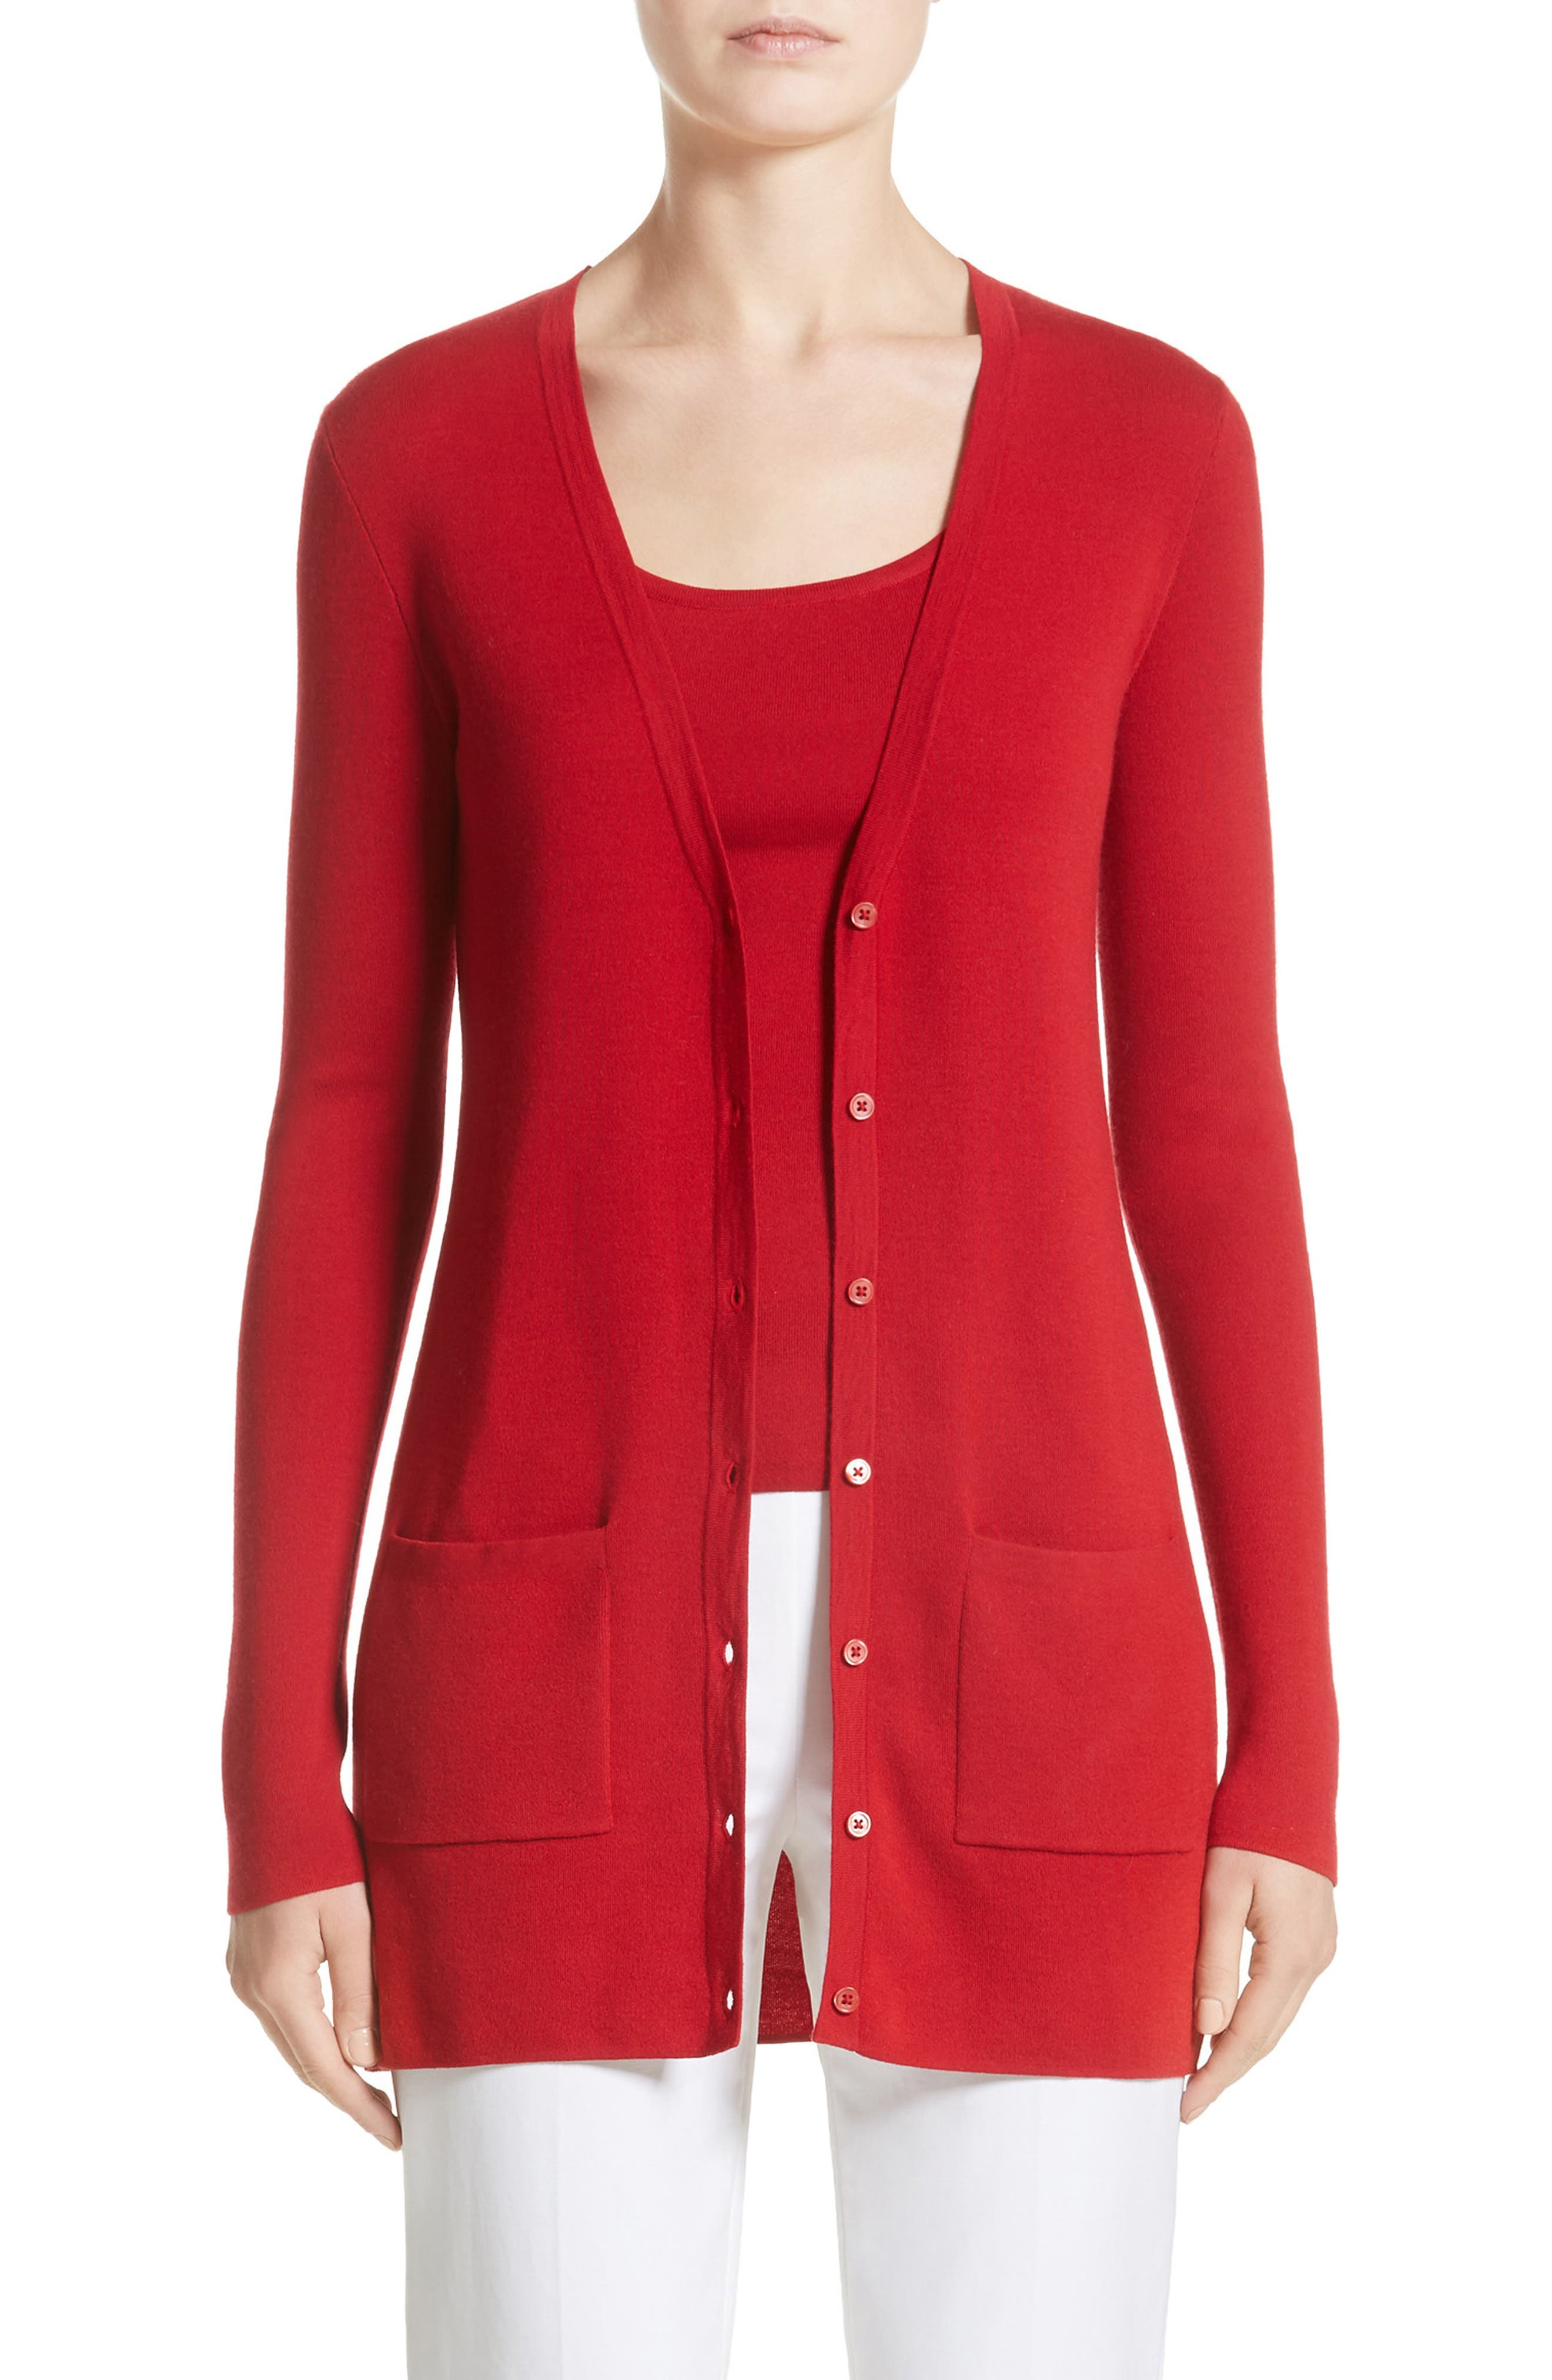 Michael Kors Super Cashmere Long Cardigan